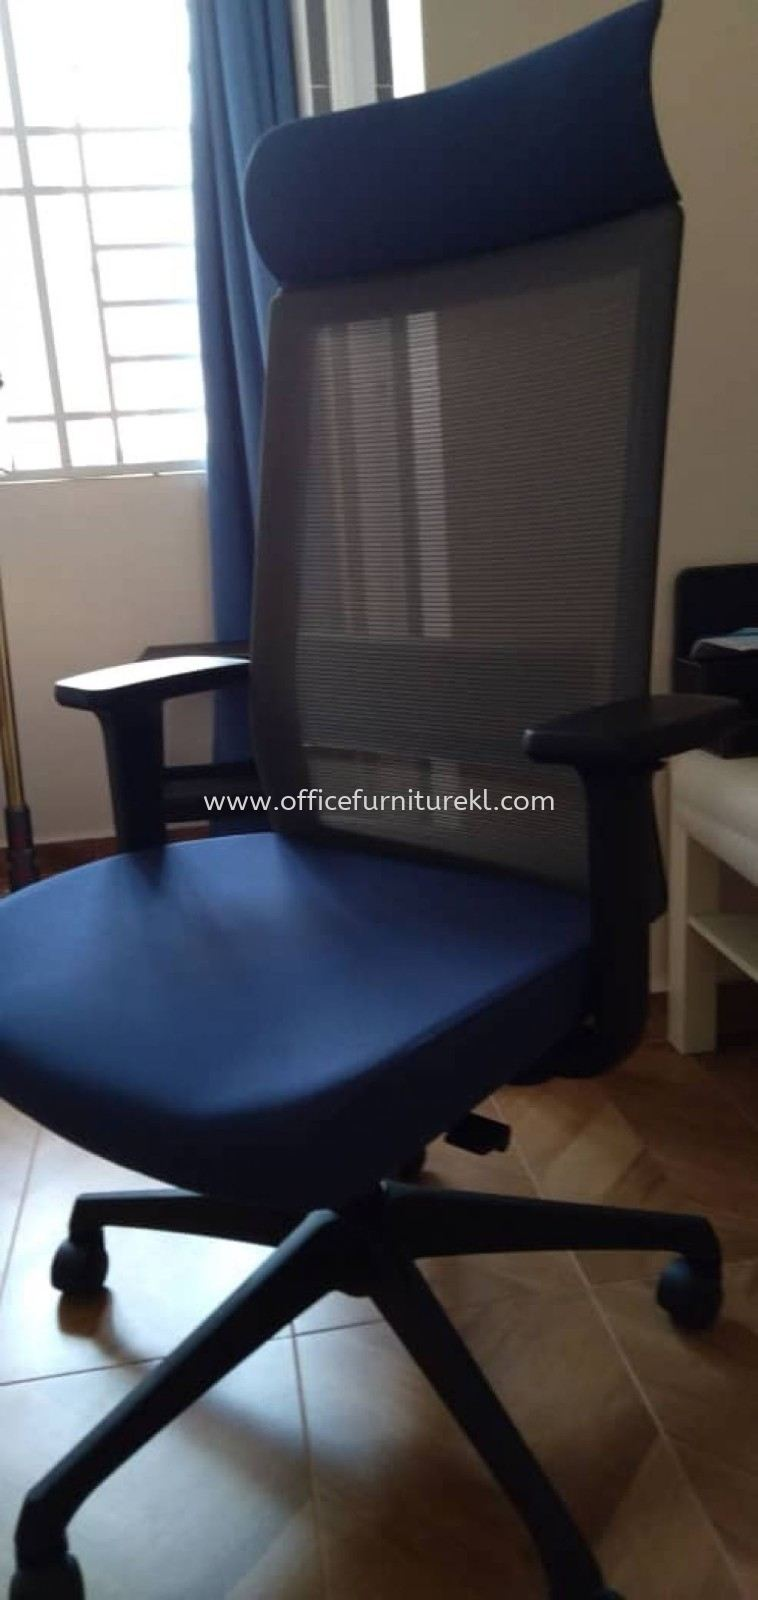 FREE DELIVERY & INSTALLATION ROYSES OFFICE MESH CHAIR l ERGONOMIC CHAIR OFFICE FURNITURE l TAMAN DESA l KUALA LUMPUR l TOP 10 MOST COMFORTABLE